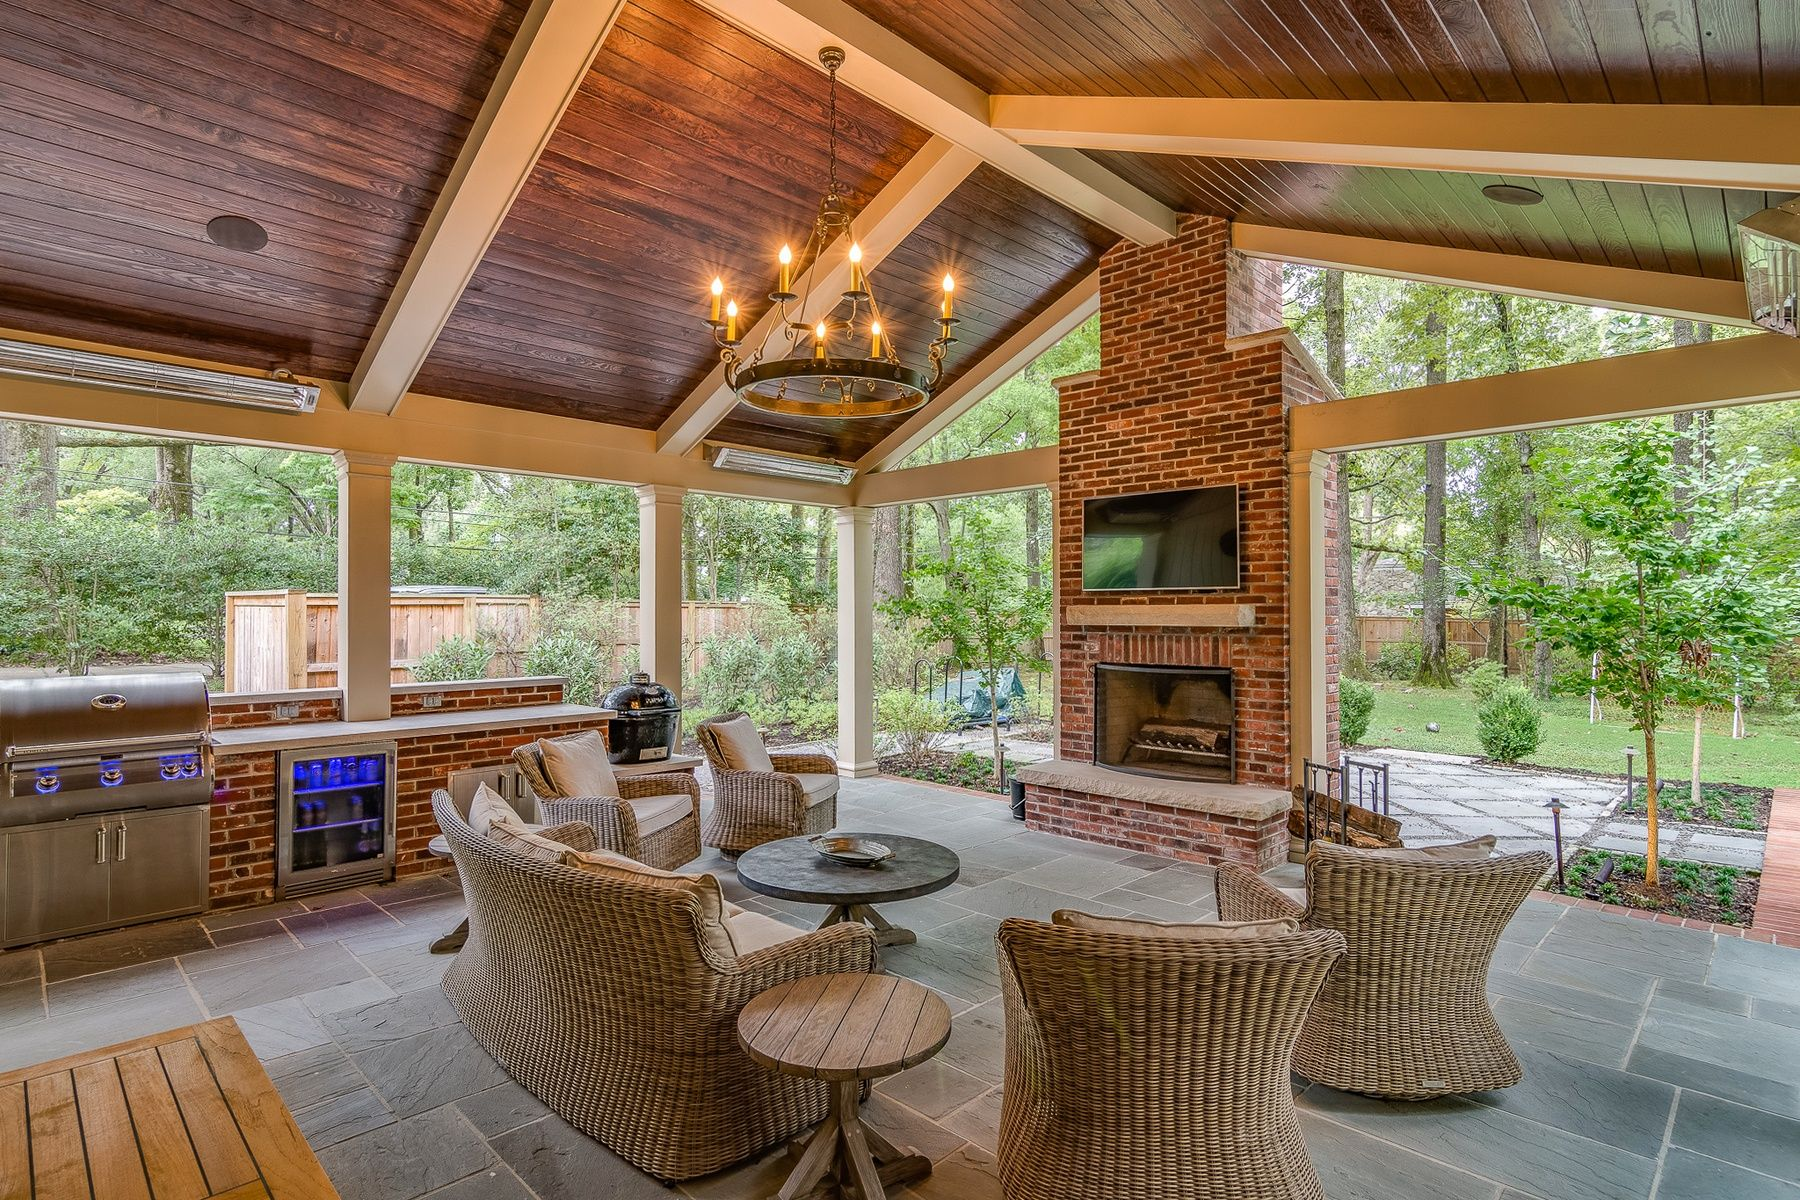 Some Of Memphis S Most Enviable Outdoor Living Spaces Outdoor Living Space Outdoor Dining Room Outdoor Rooms Outdoor patio living spaces